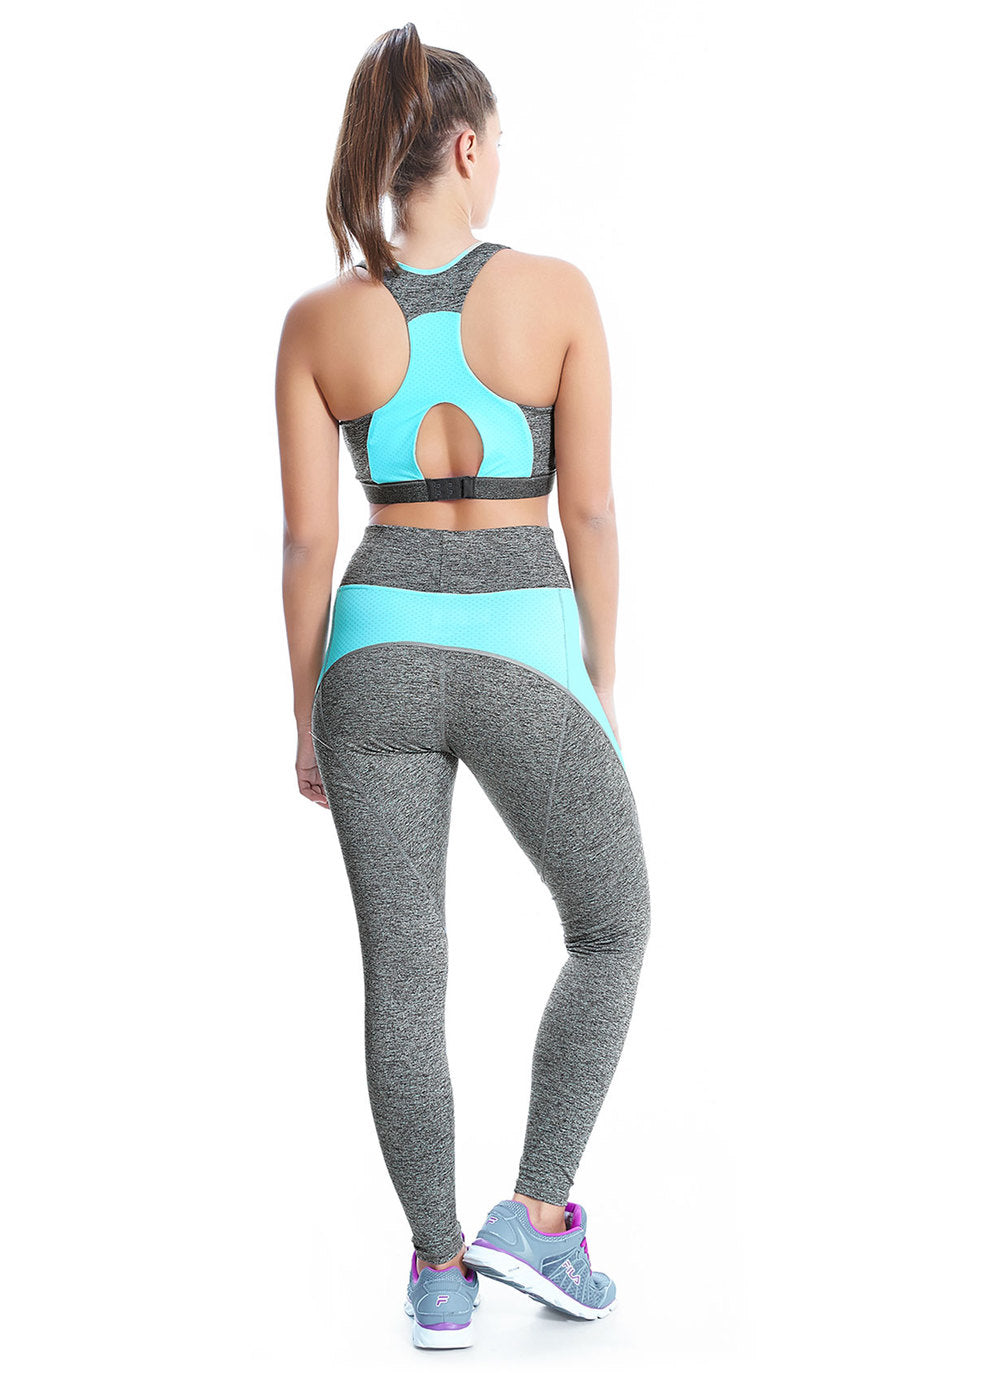 AA4010CON Freestyle Soft Crop Top |CARBON|